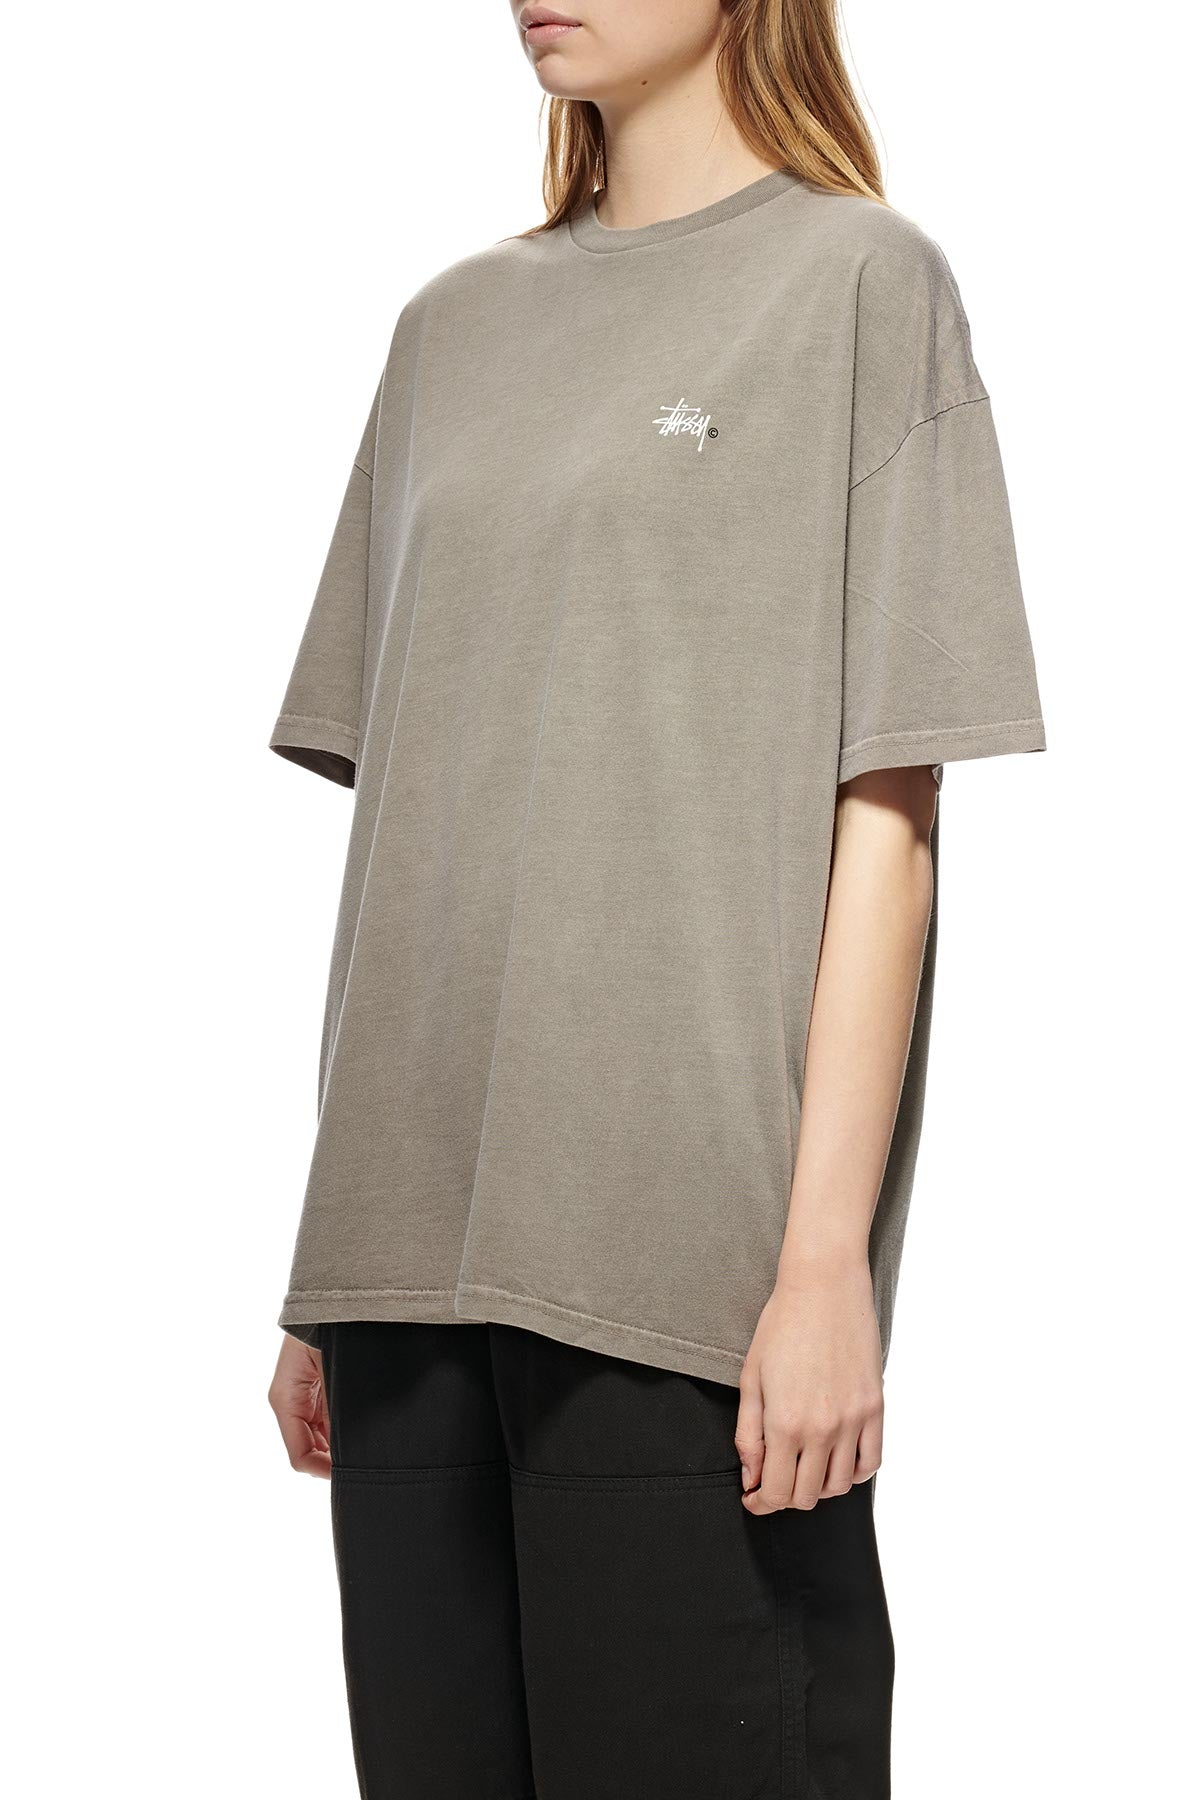 Graffiti Pigment Relaxed Tee